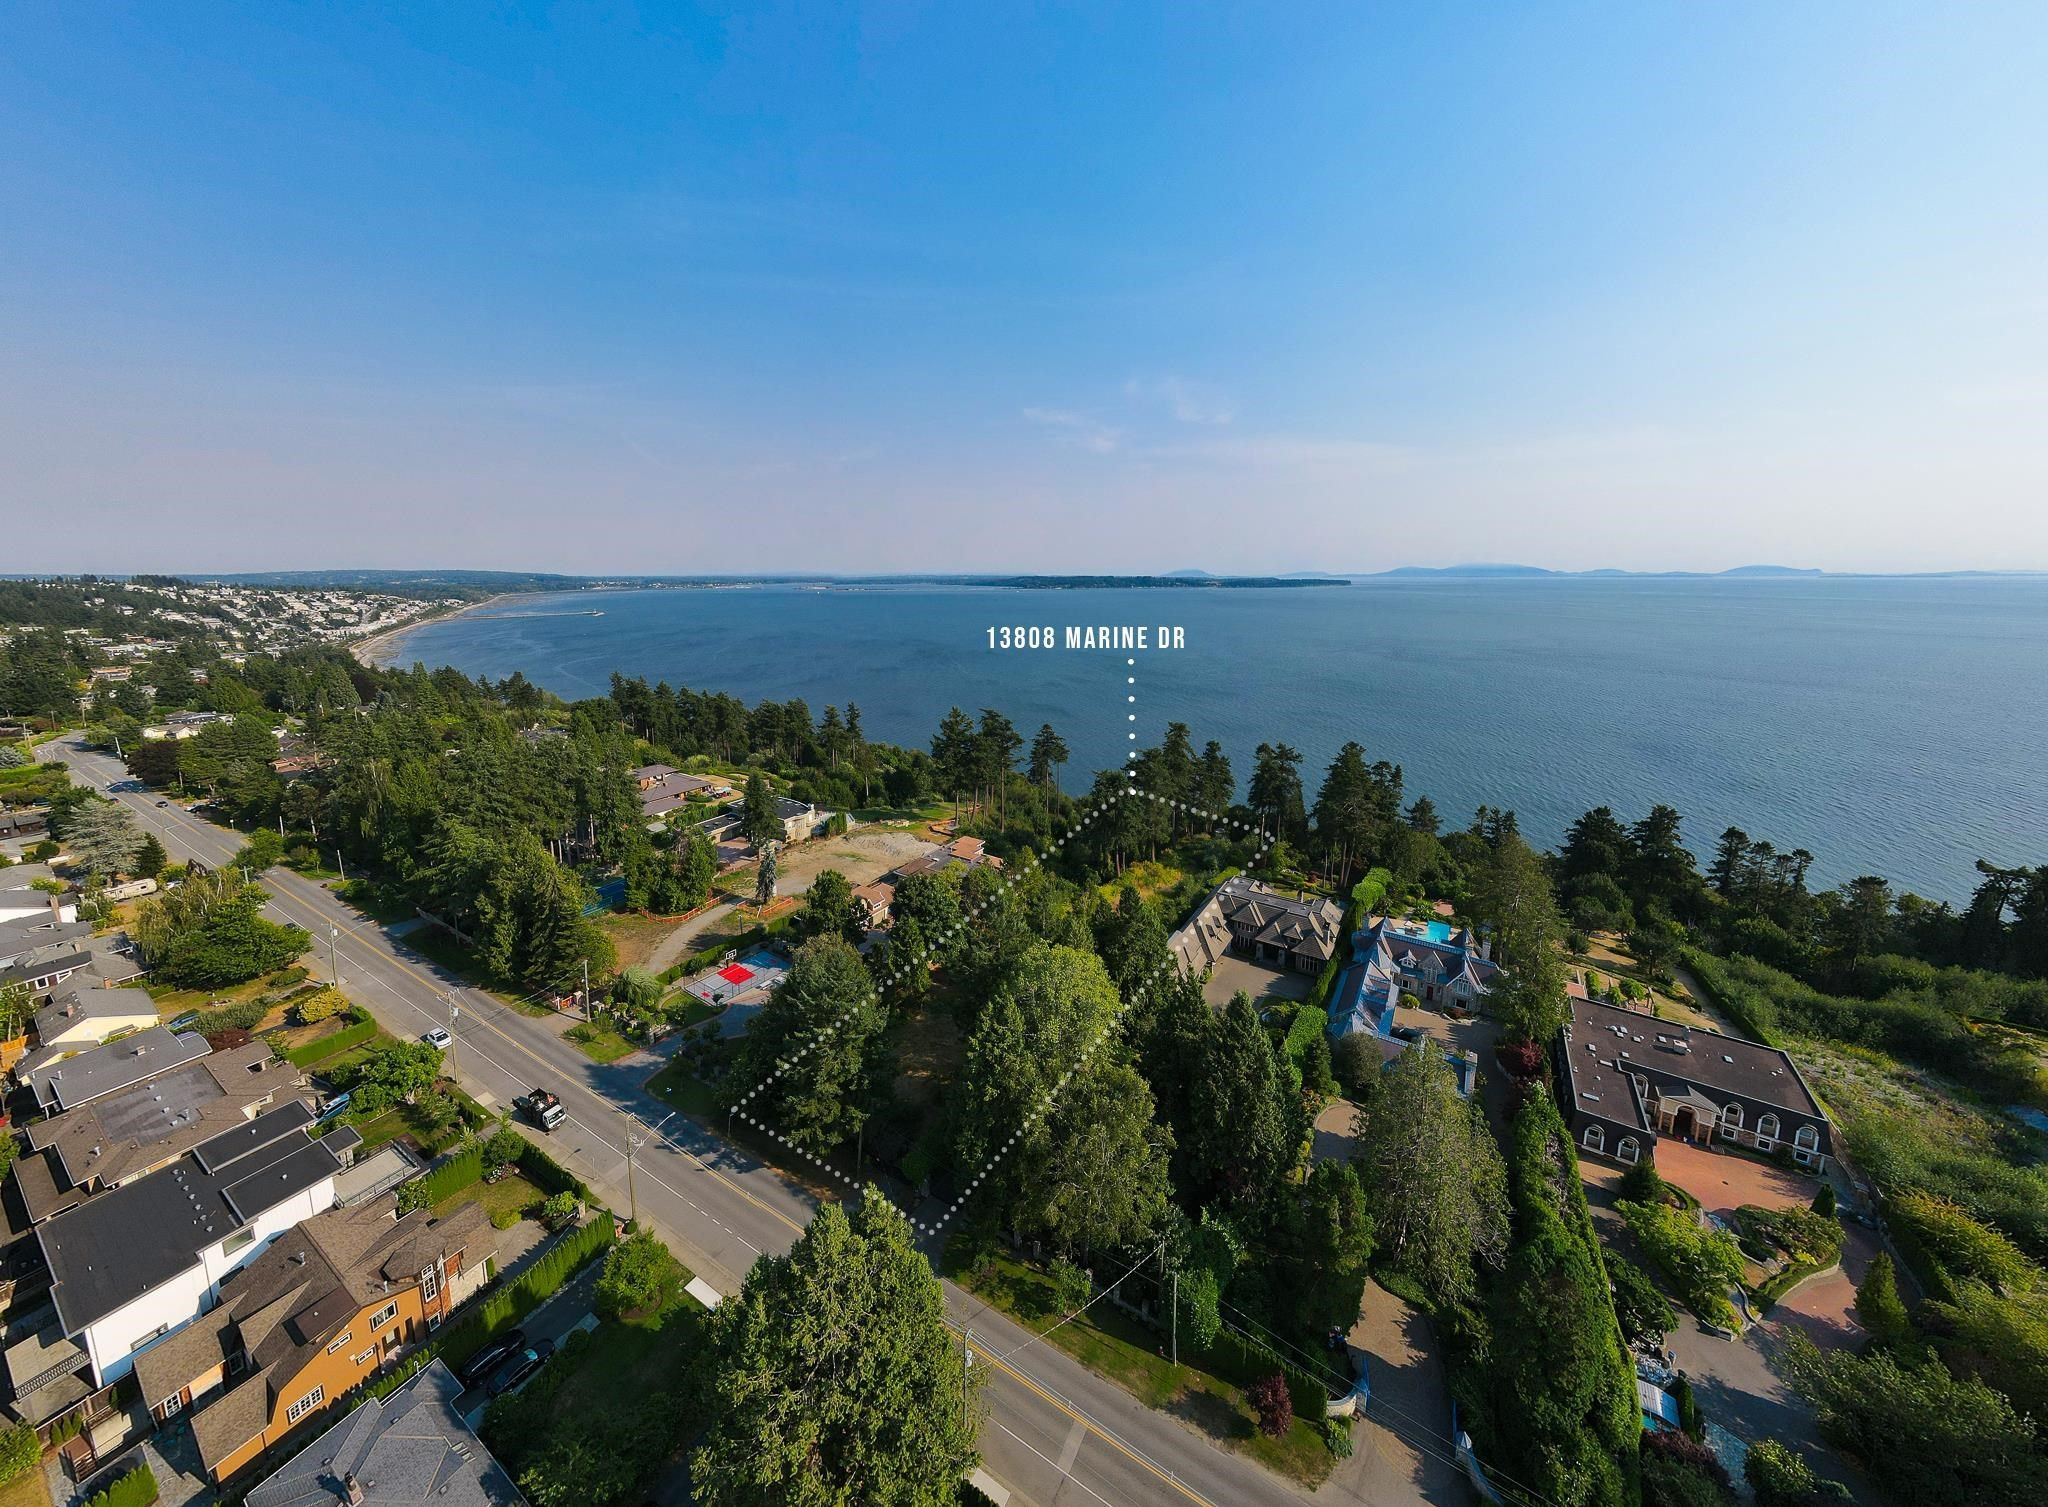 """Main Photo: 13808 MARINE Drive: White Rock Land for sale in """"Marine Drive Waterfront"""" (South Surrey White Rock)  : MLS®# R2611057"""